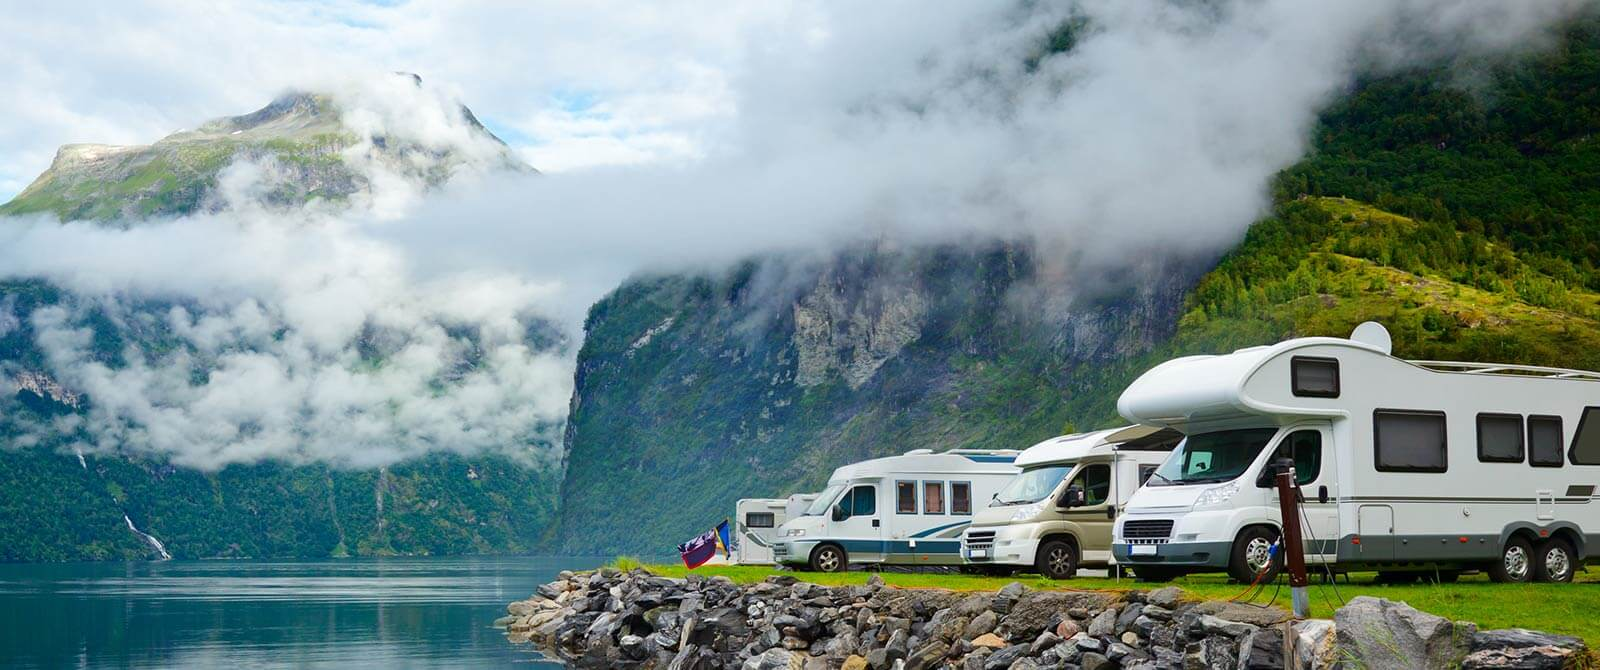 Motorhomes camping off-grid in the mountains